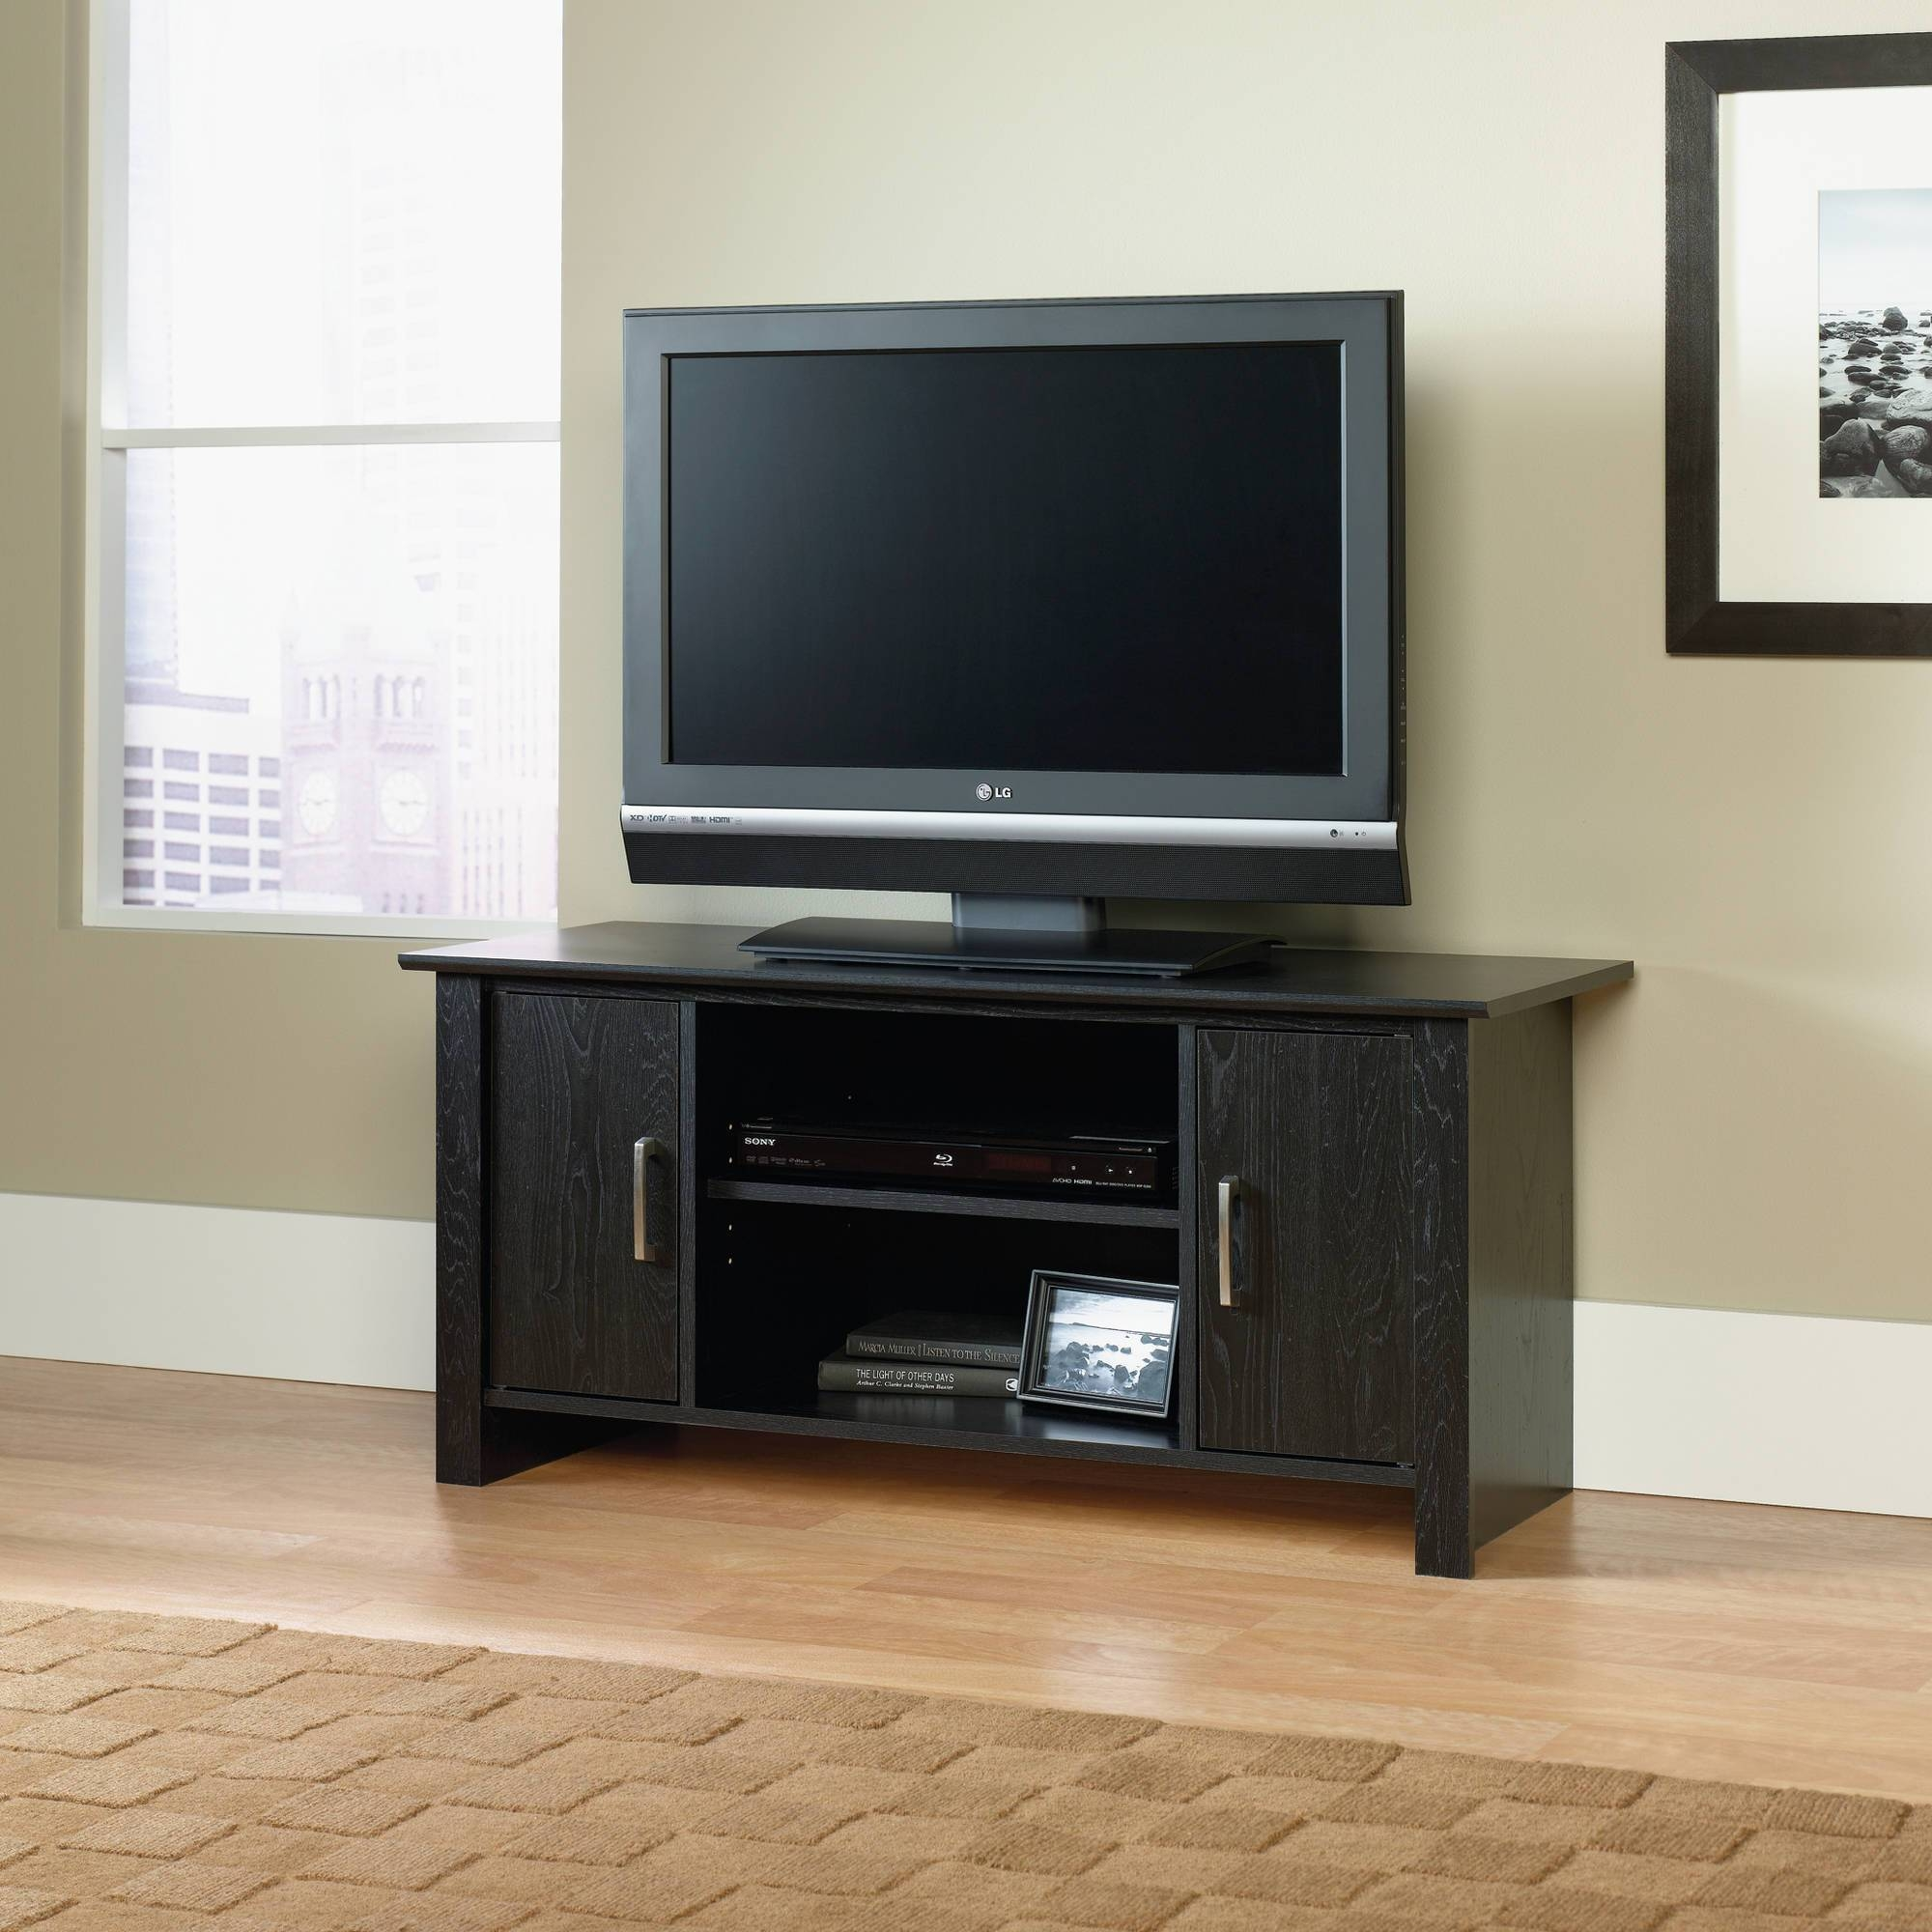 Tv Stands & Entertainment Centers - Walmart with 24 Inch Tall Tv Stands (Image 12 of 15)